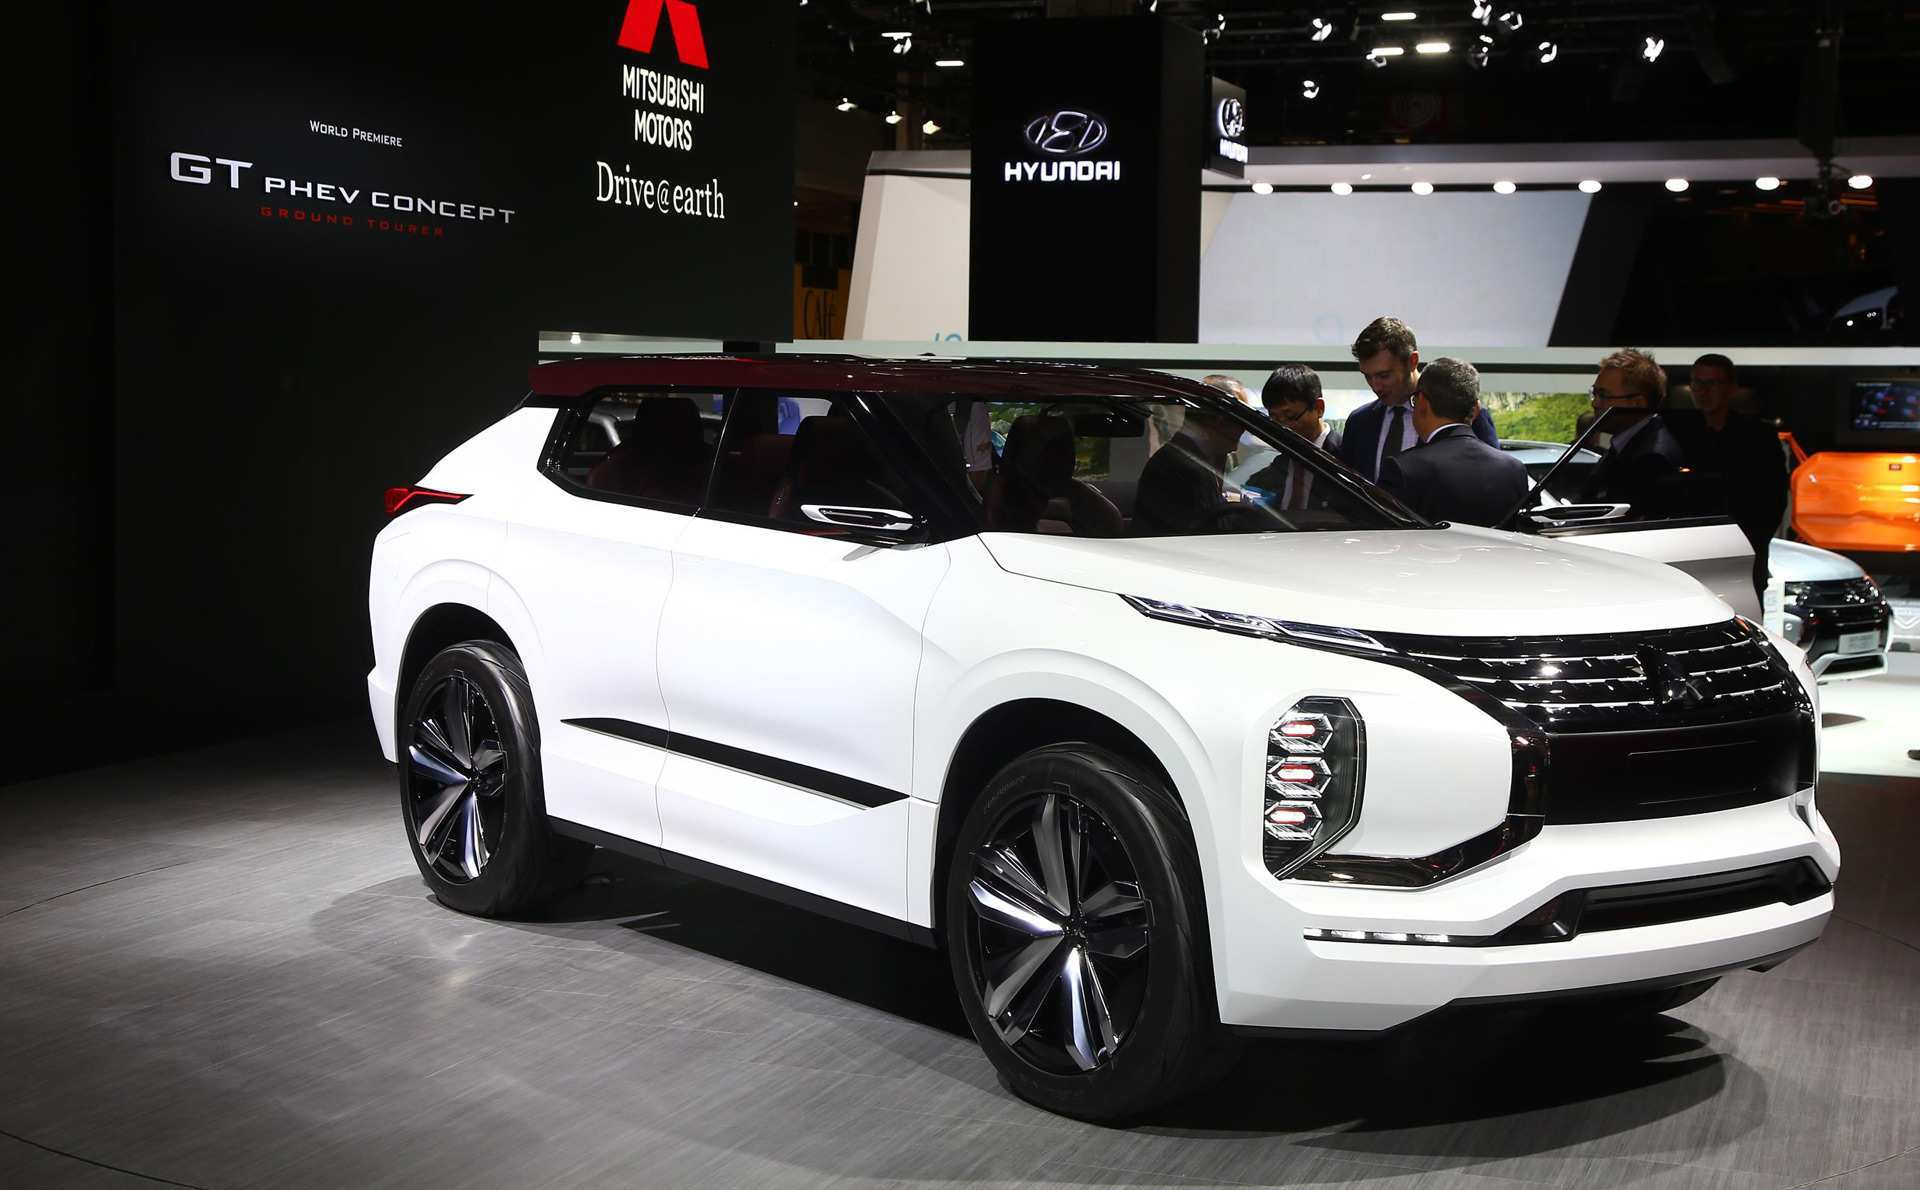 83 A Mitsubishi Concept 2020 Price And Release Date